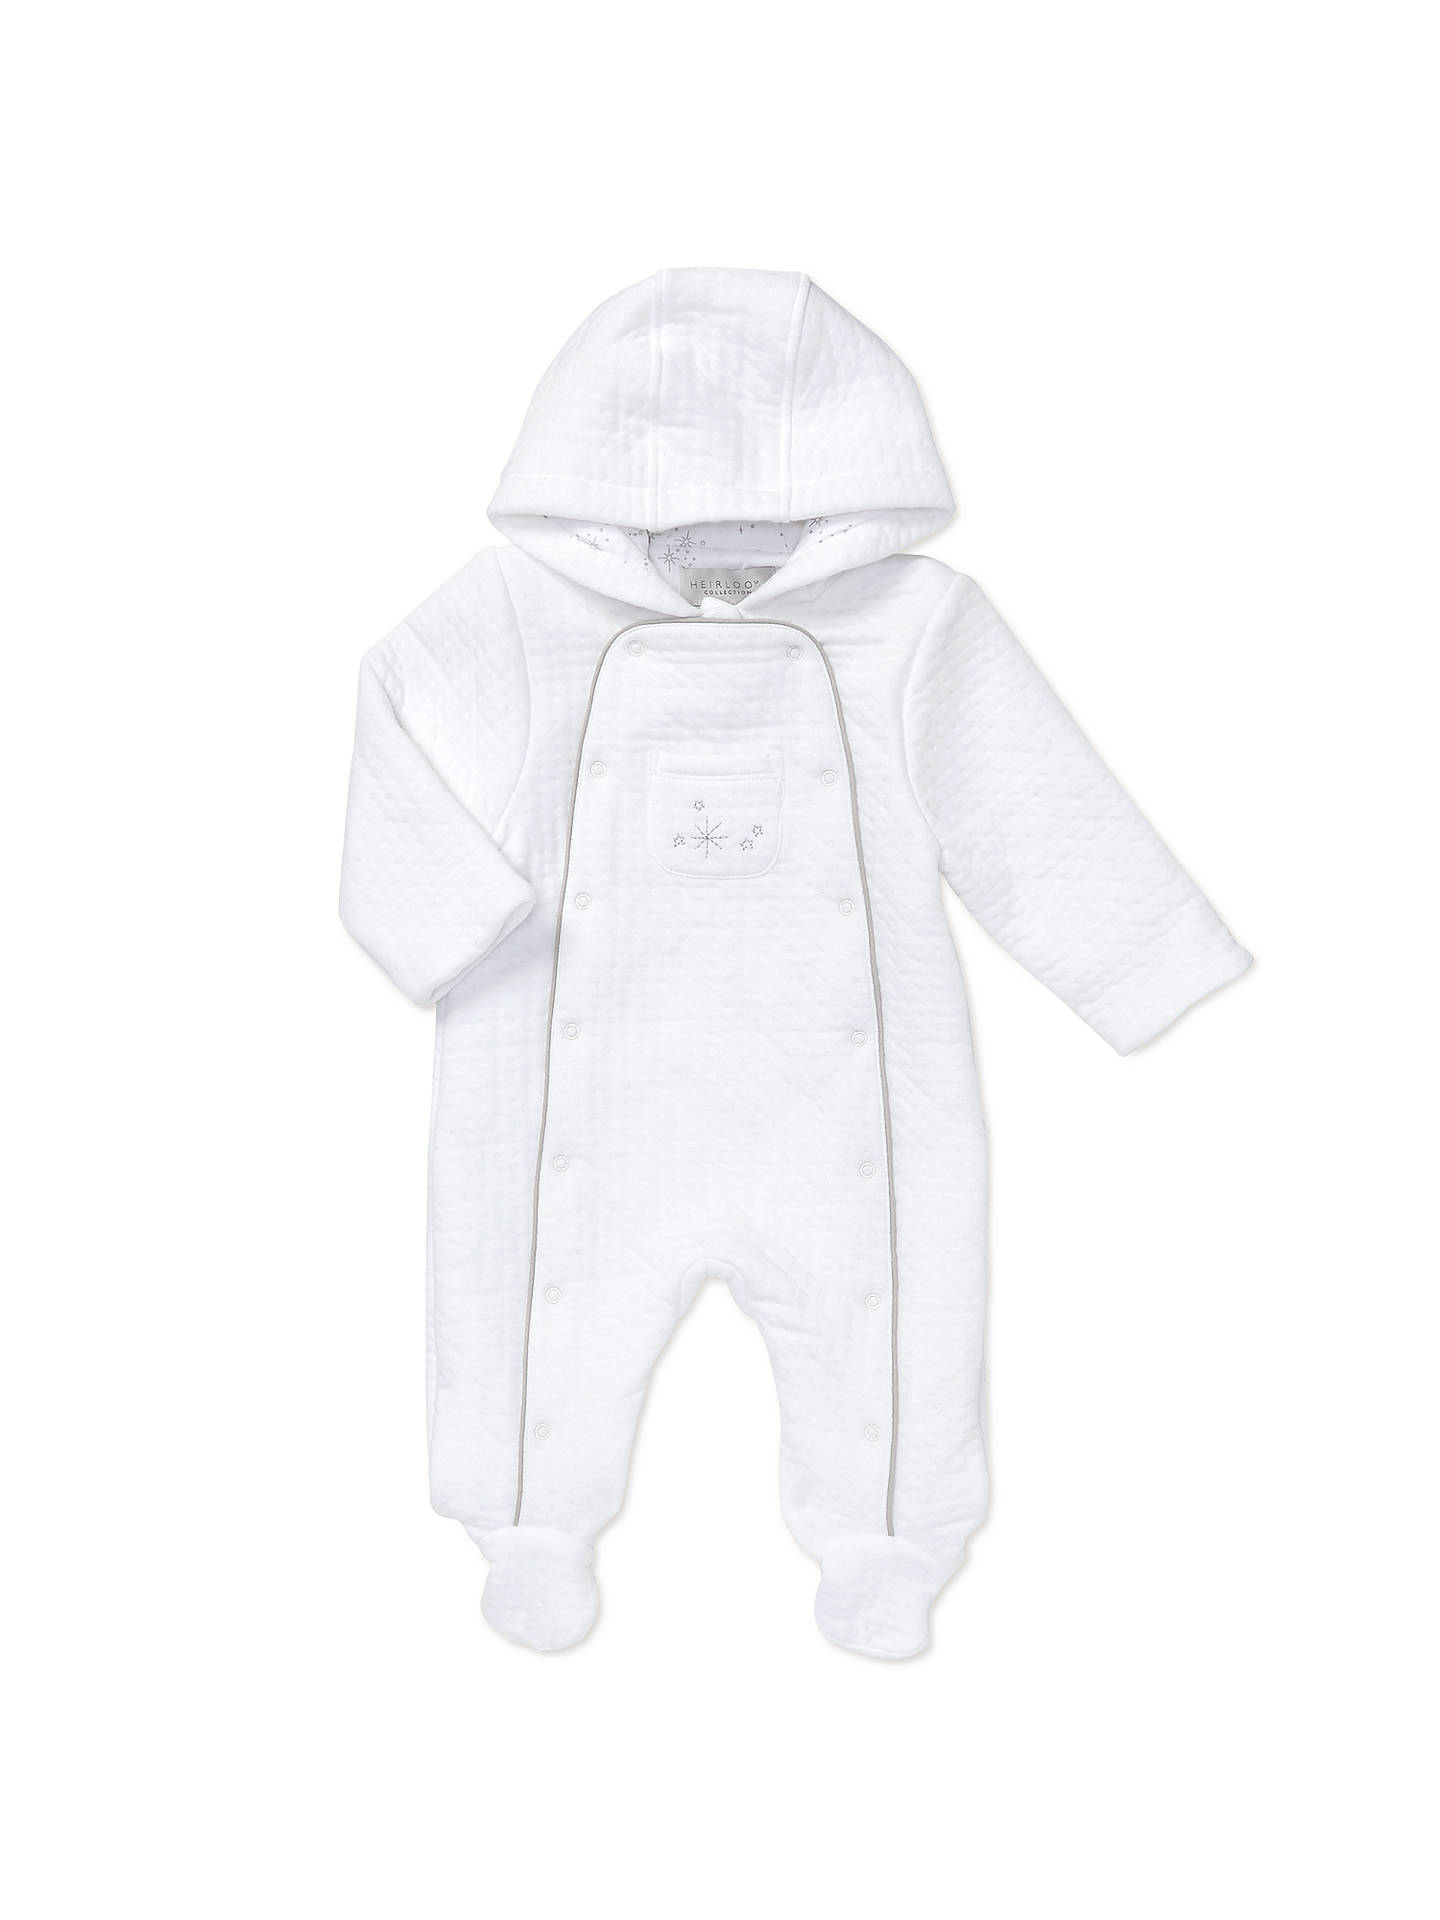 946e391f7436 John Lewis   Partners Heirloom Collection Baby Star Wadded Pramsuit ...